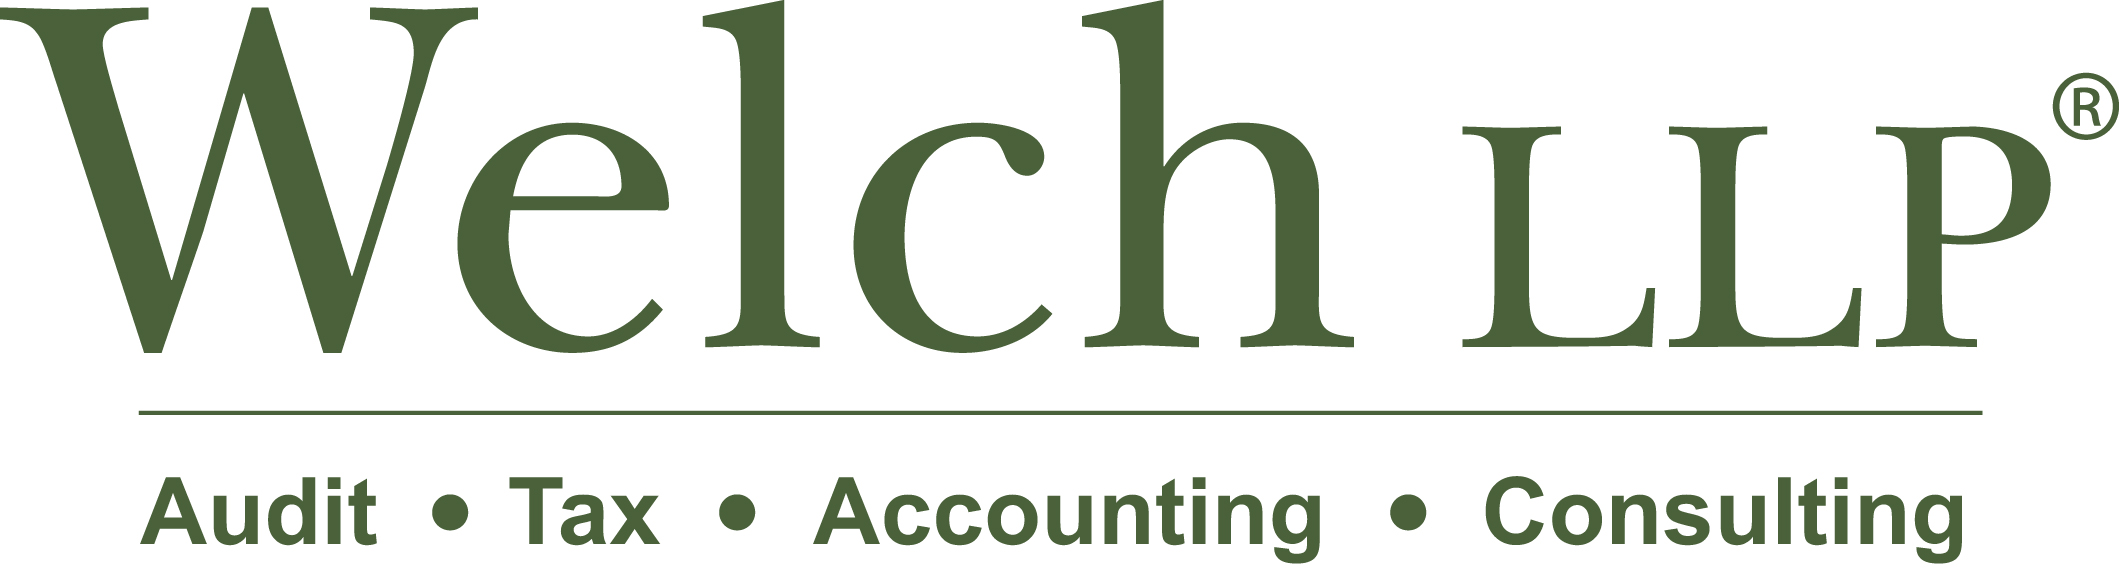 Welch LLP - Audit, Tax, Accounting, Consulting (logo)